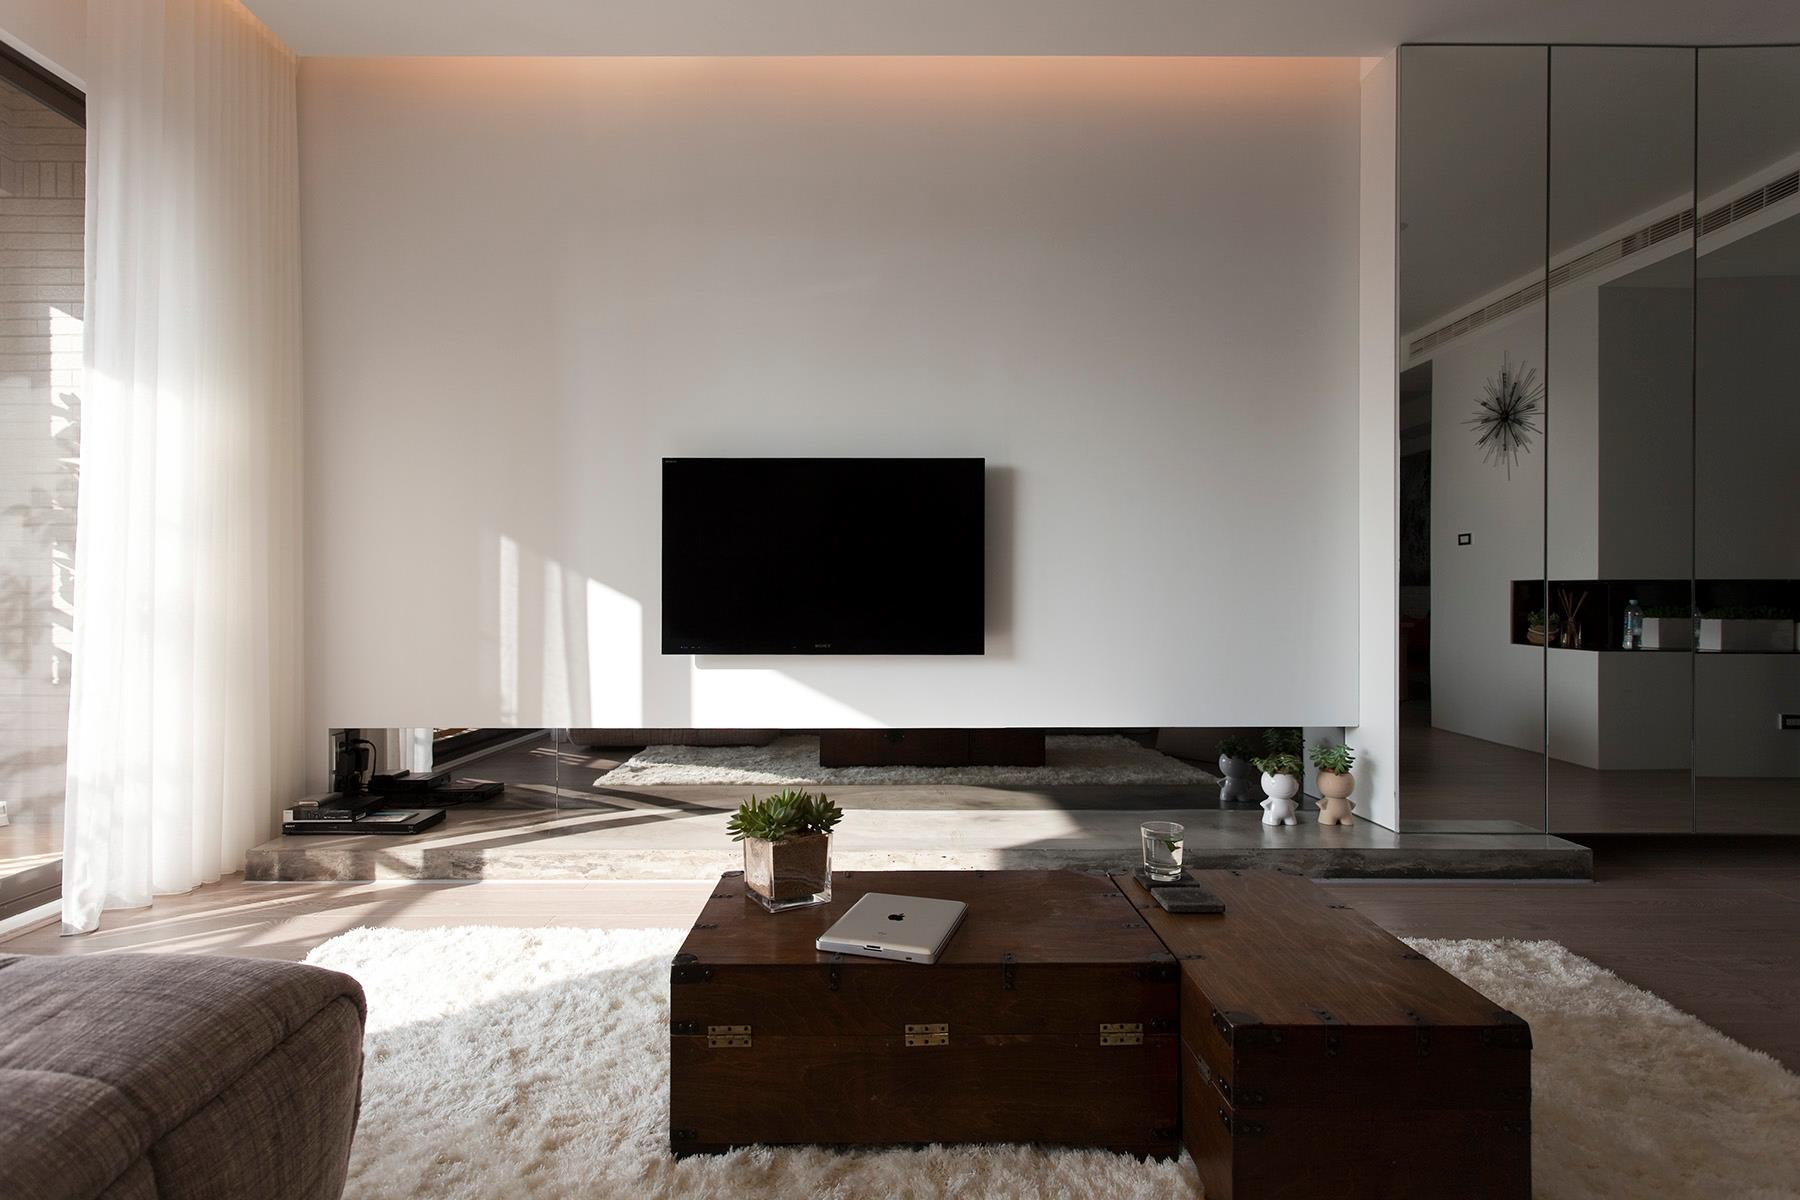 Modern living room jan 05 2013 19 52 46 picture gallery - Contemporary living room interiors ...